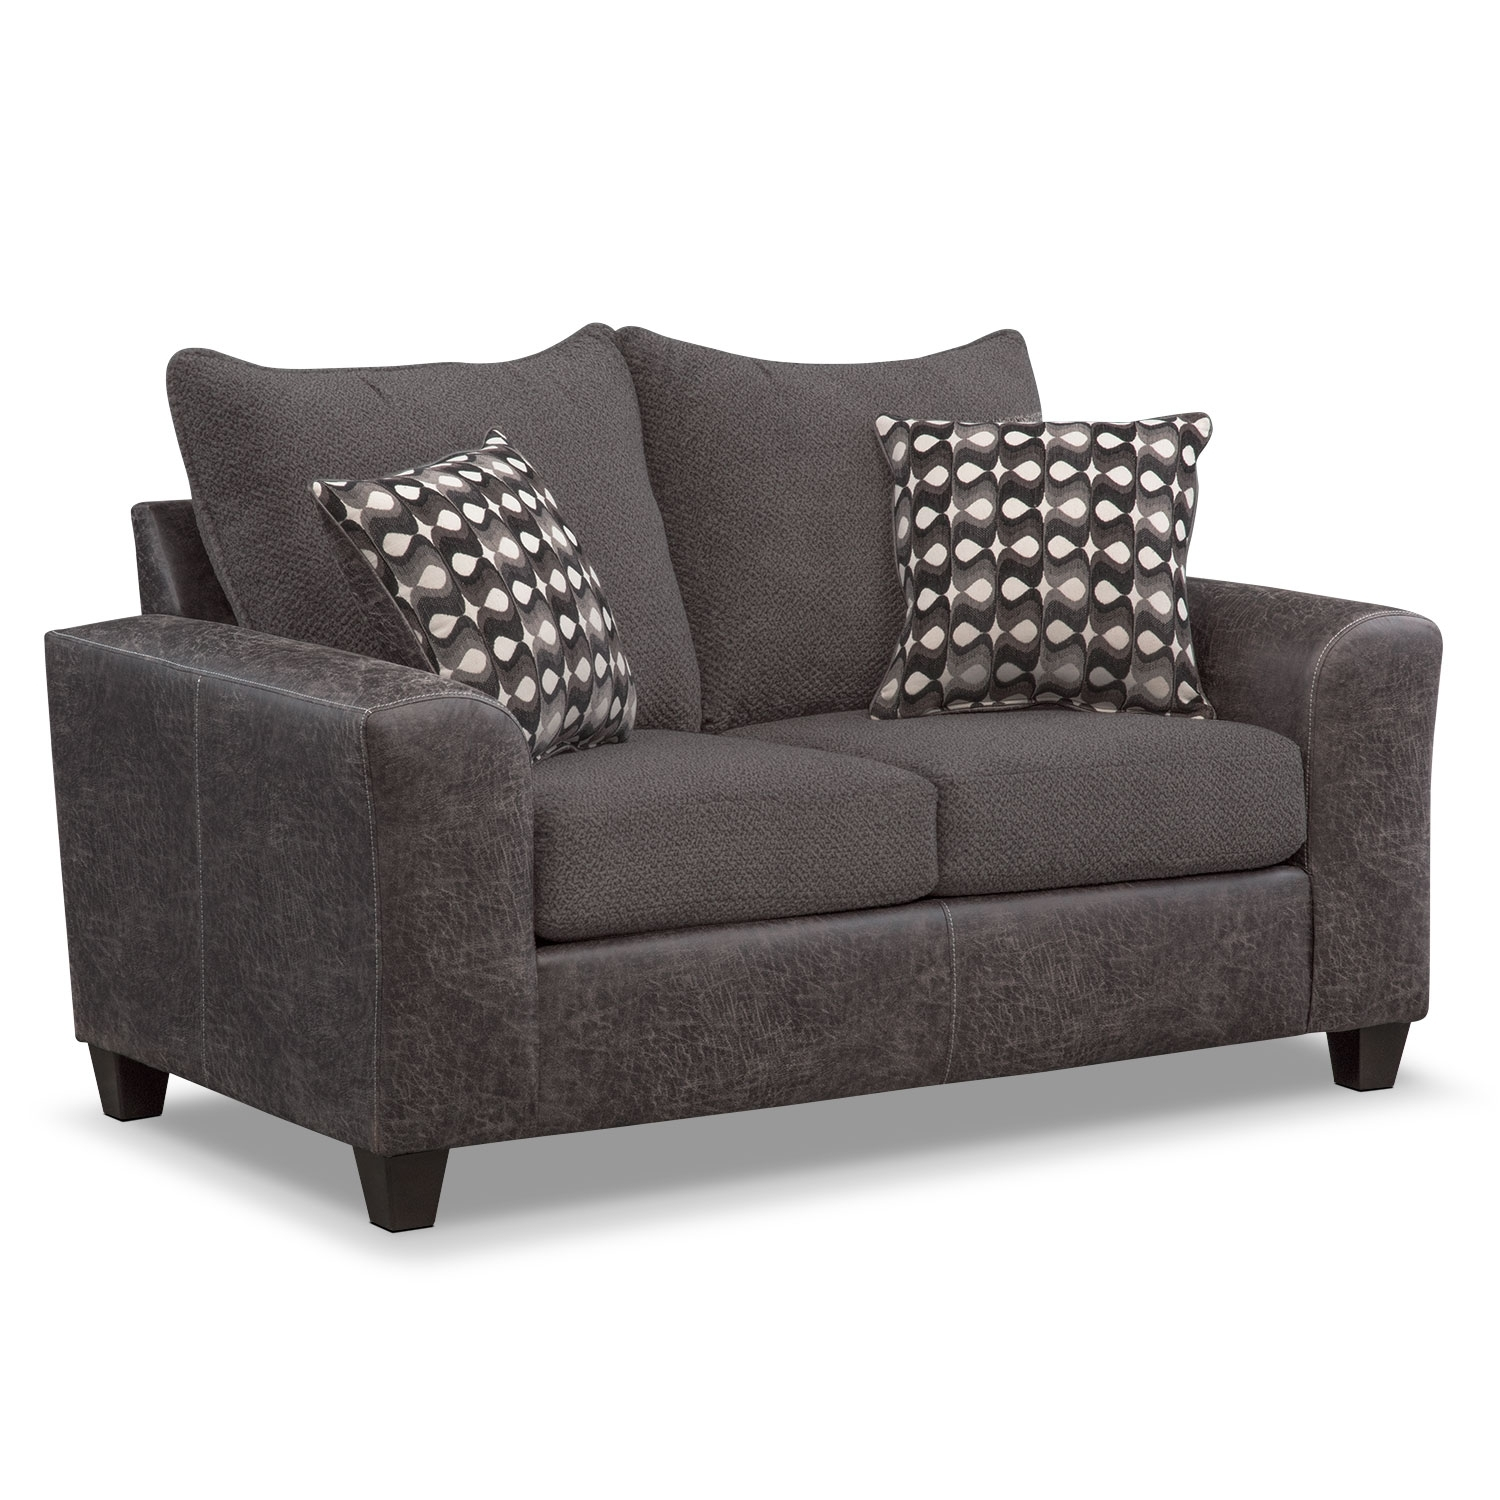 Brando Sofa, Loveseat And Swivel Chair Set – Smoke | Value City For Sofas With Swivel Chair (View 9 of 10)